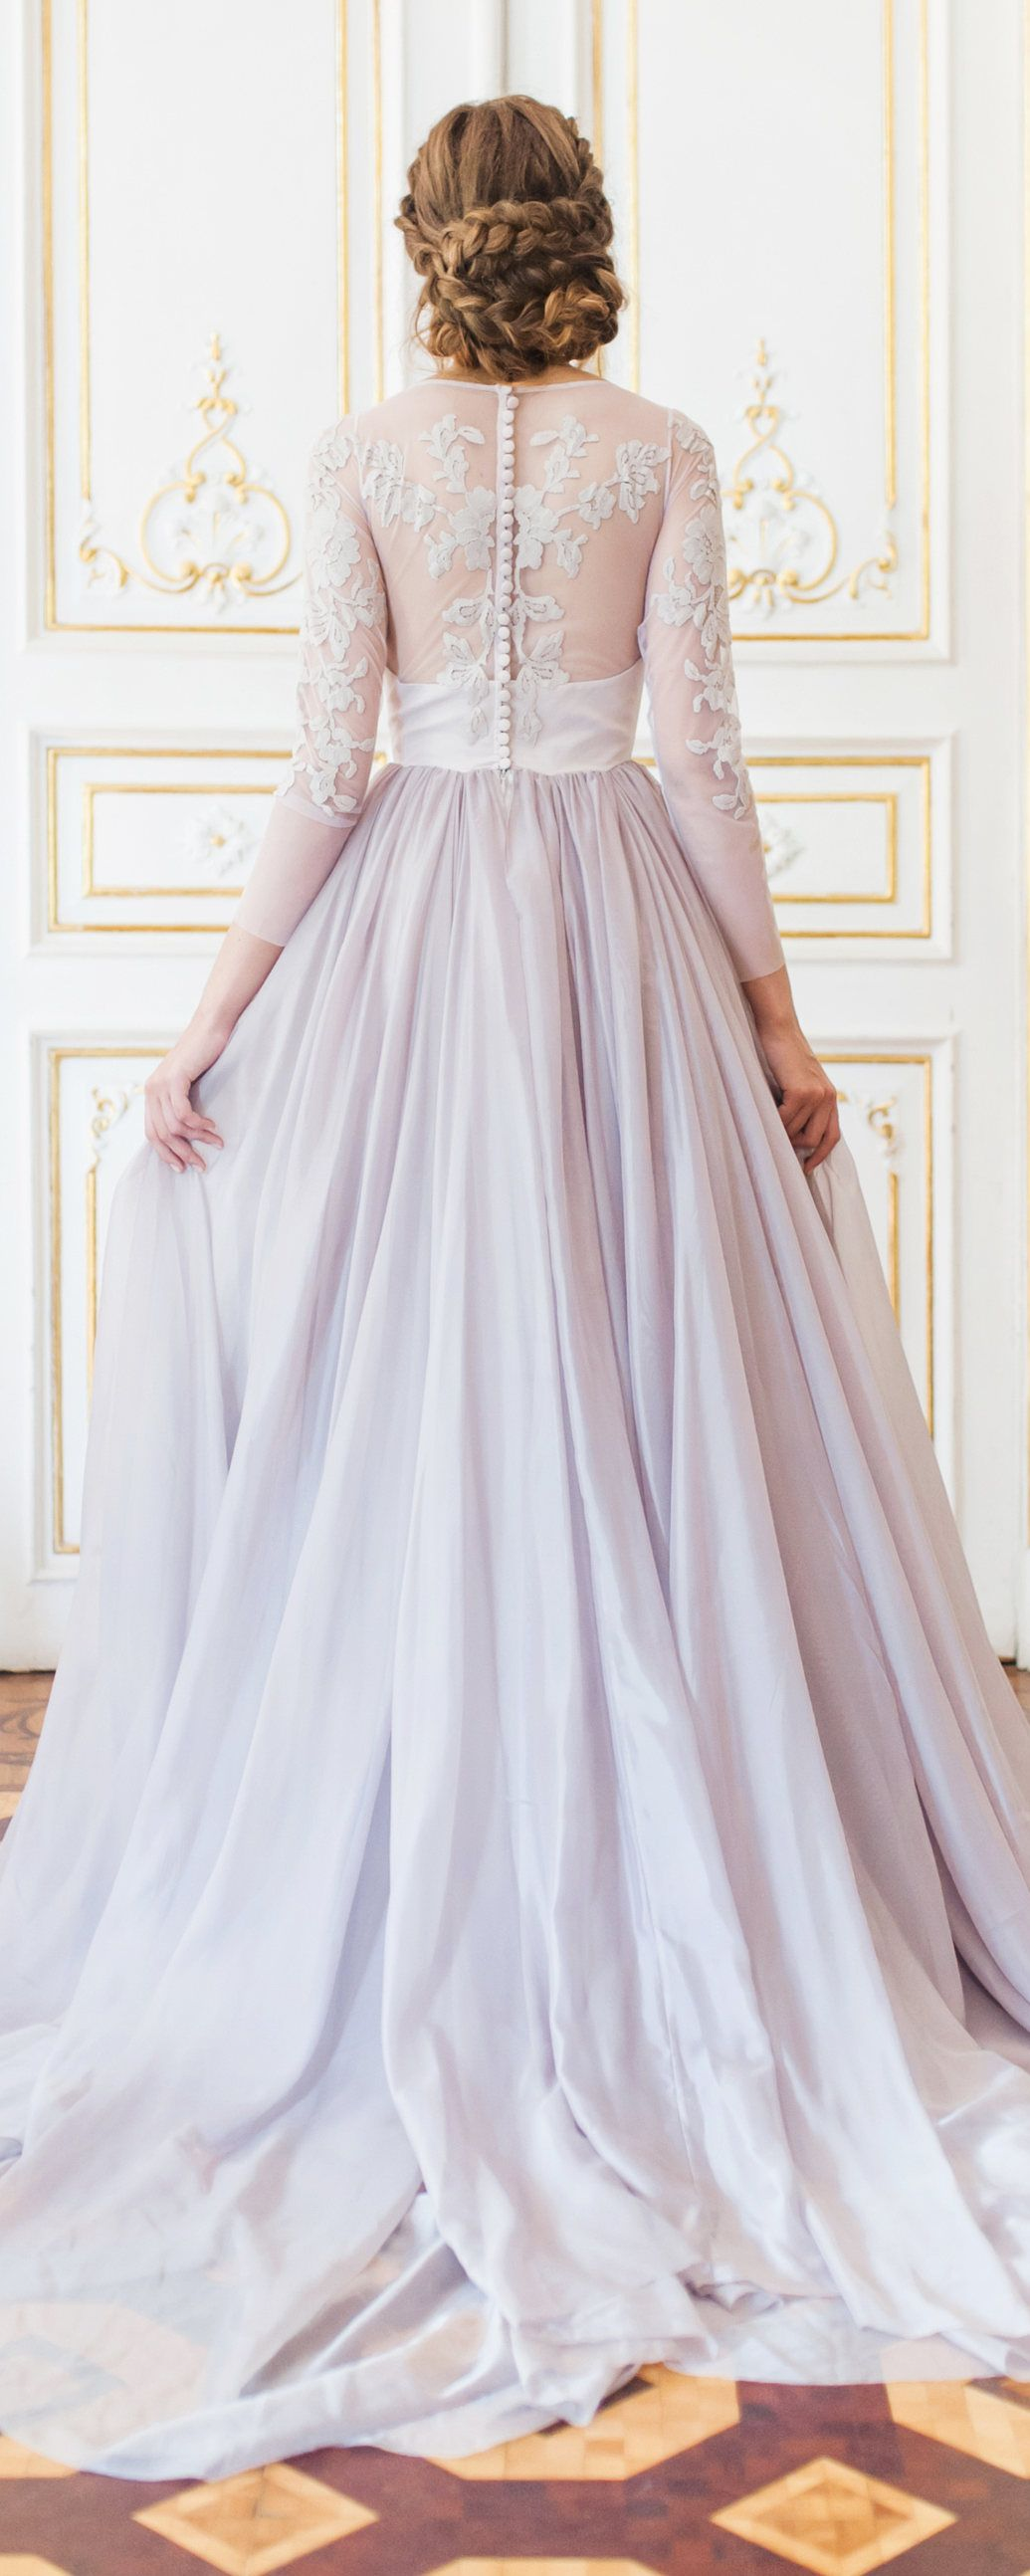 35+ Sheer wedding dresses with sleeves information